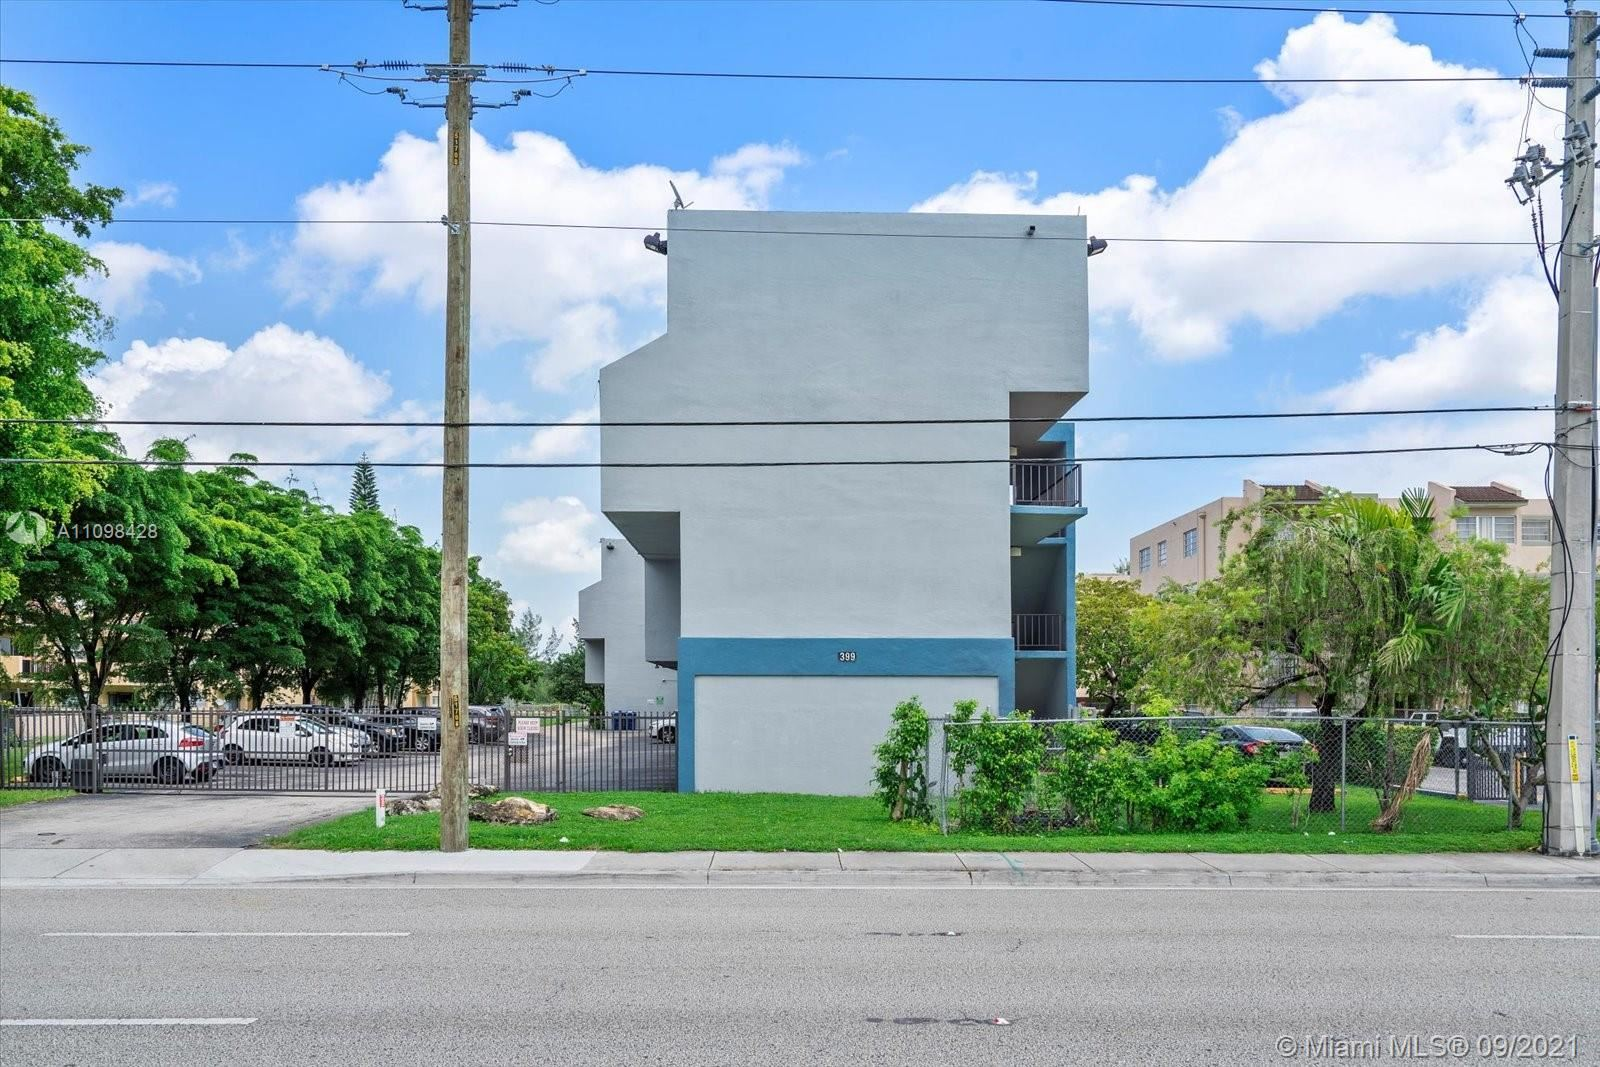 399 NW 72nd Ave #310, Miami, FL 33126 - #: A11098428